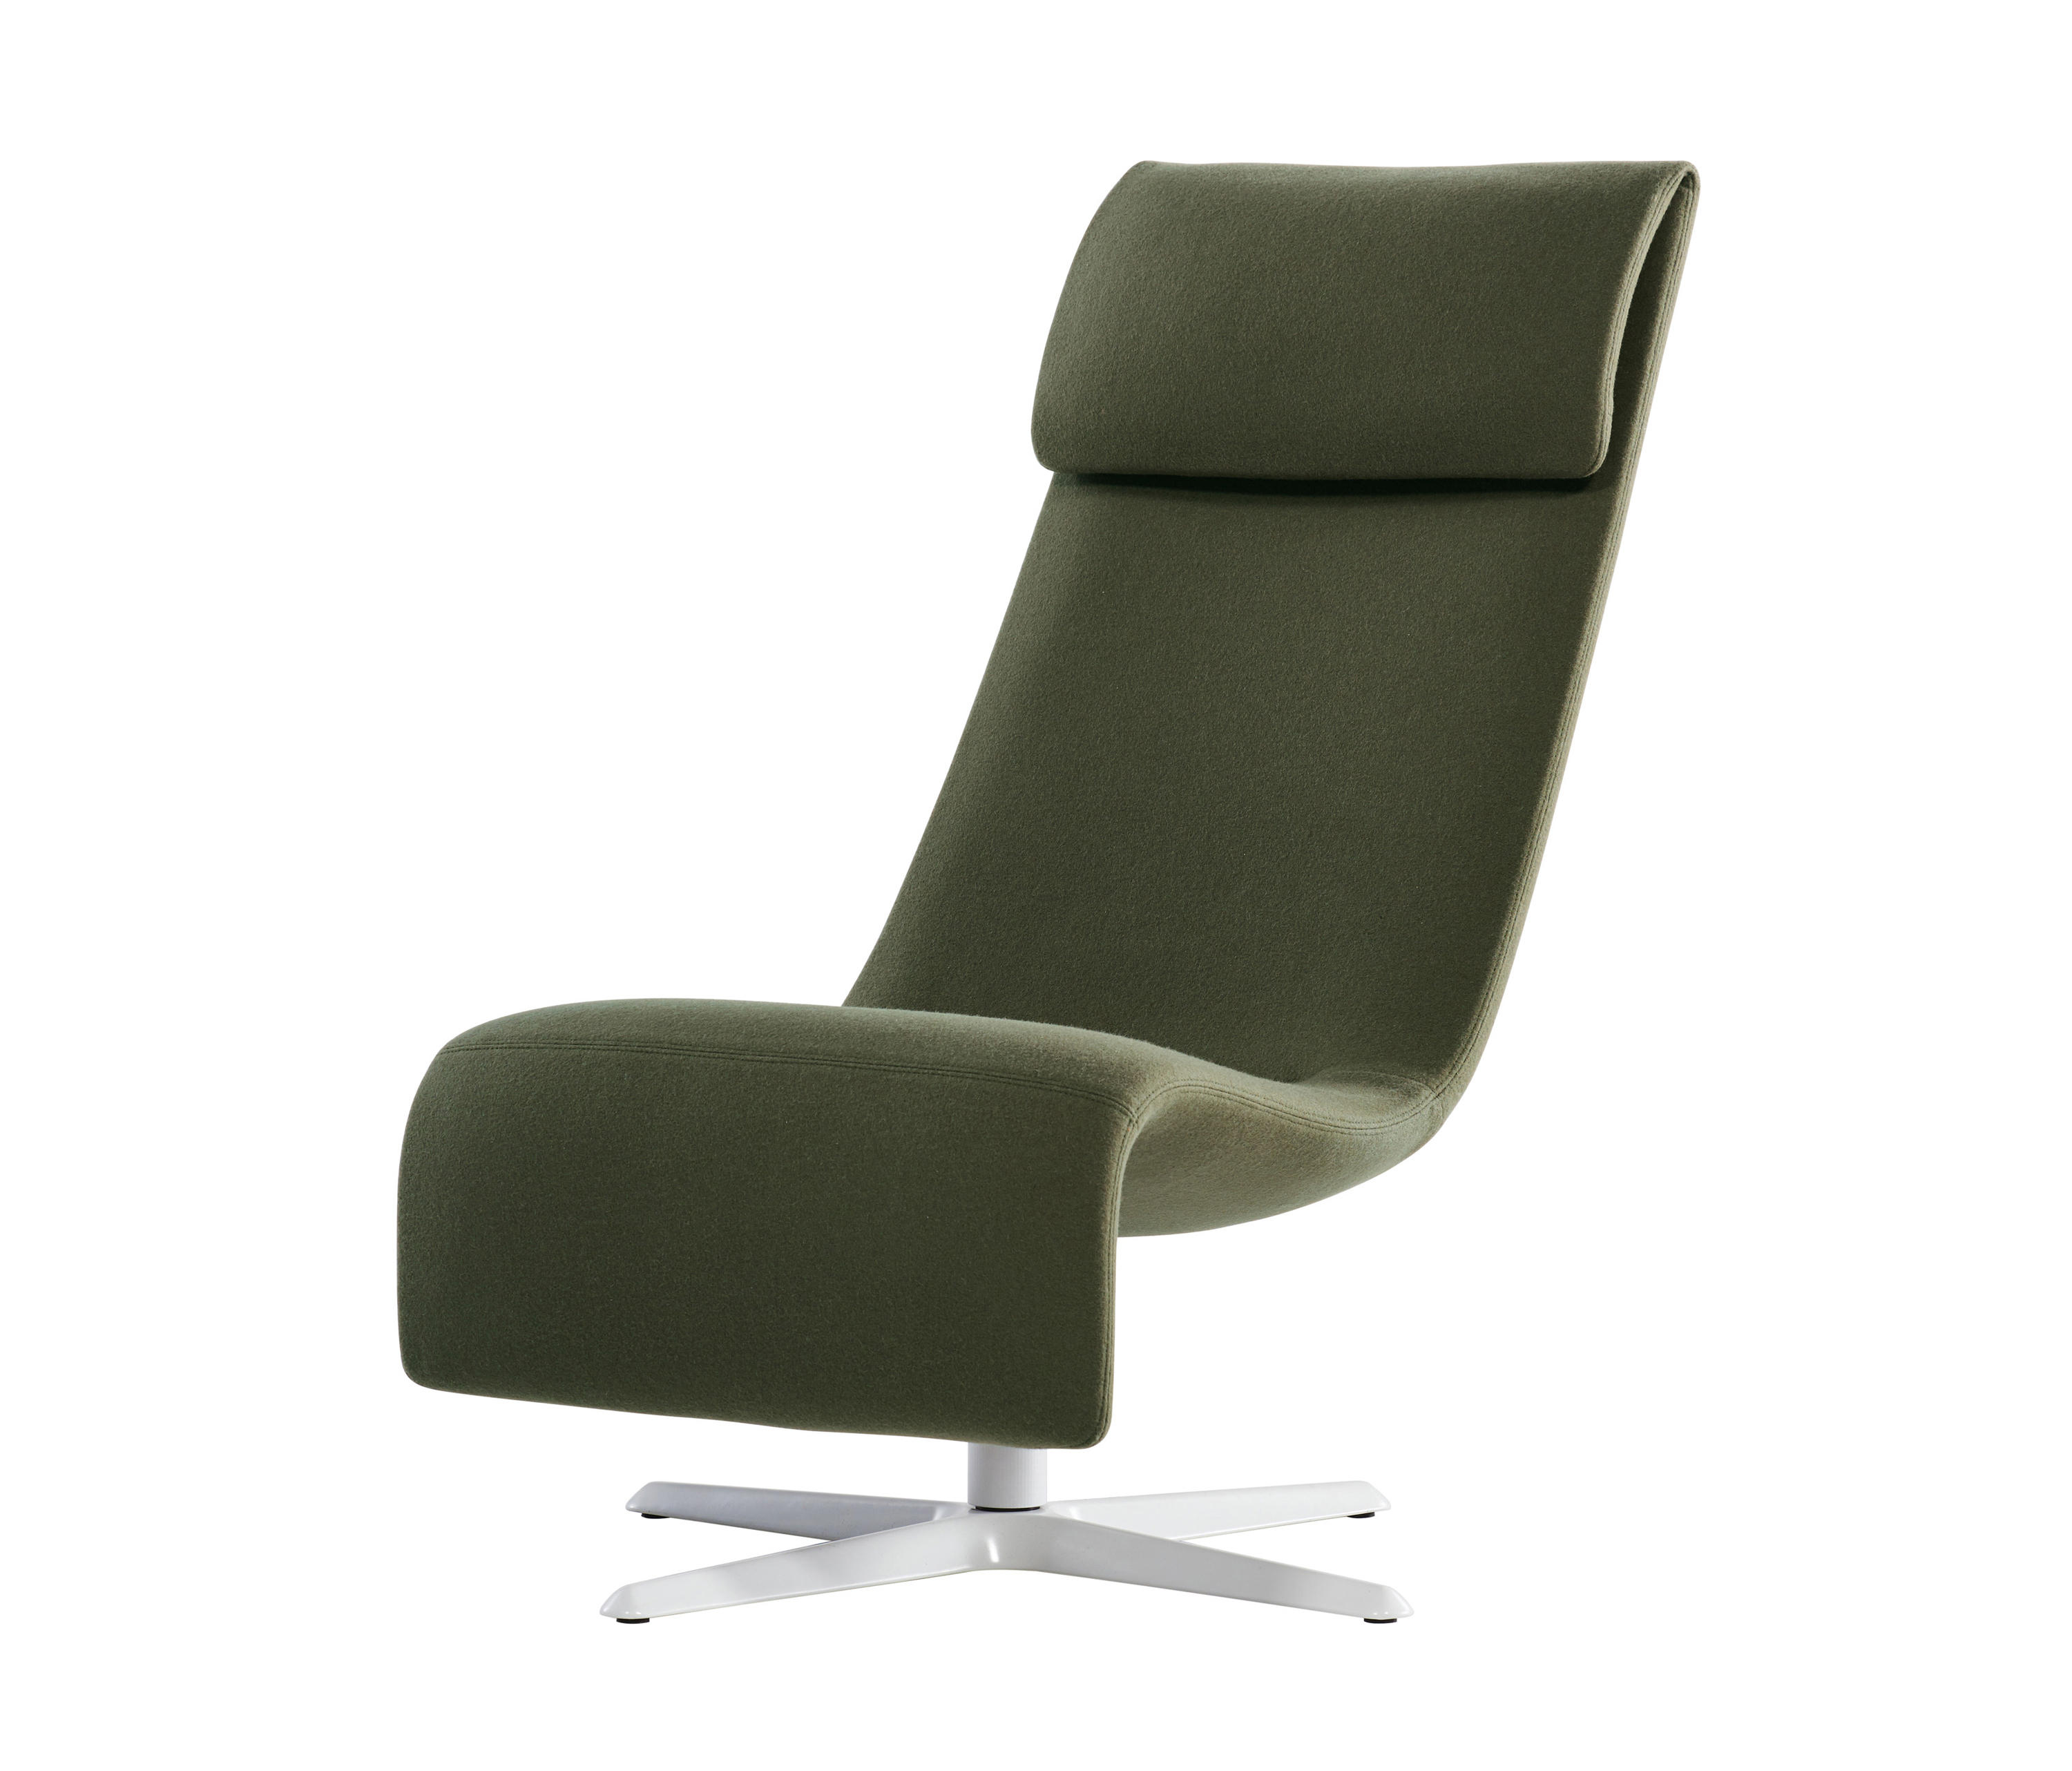 Zones solo lounge chair lounge chairs from teknion for Furniture 08054